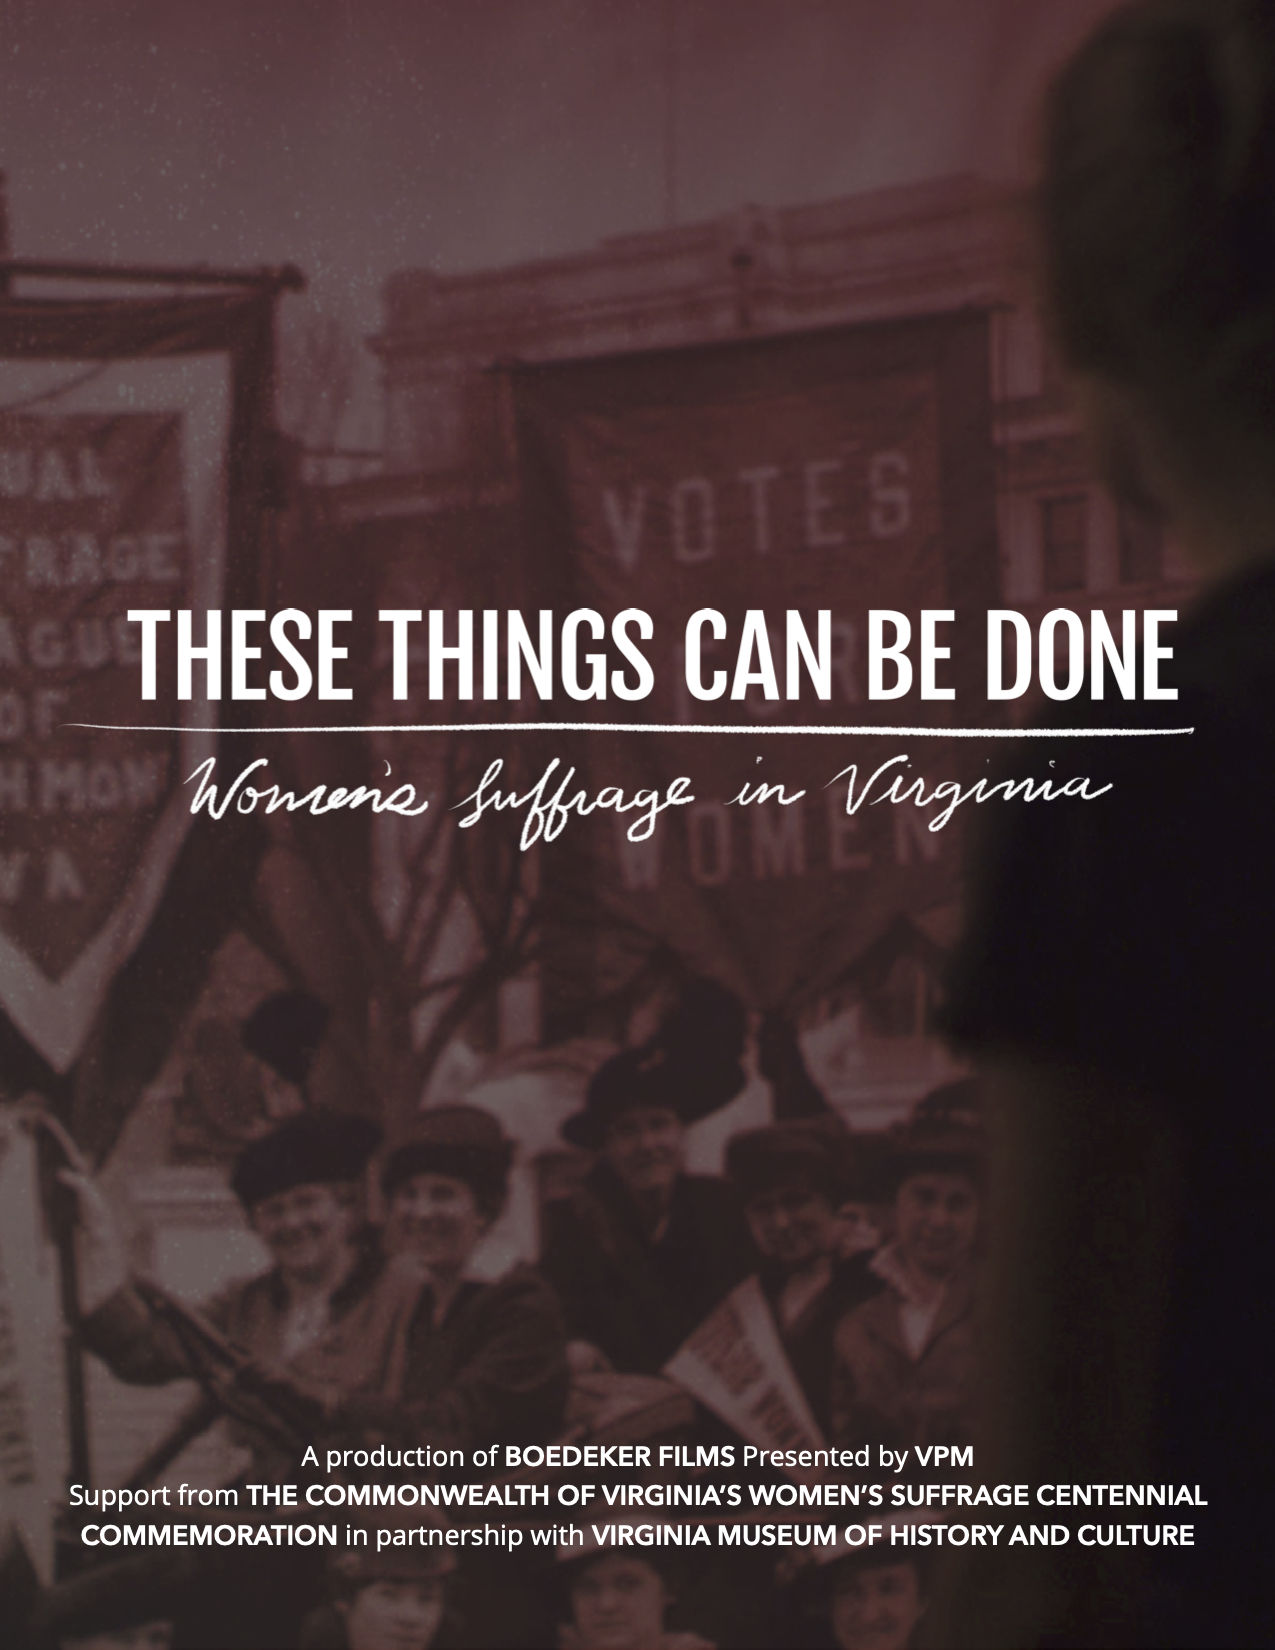 These Things Can Be Done movie poster